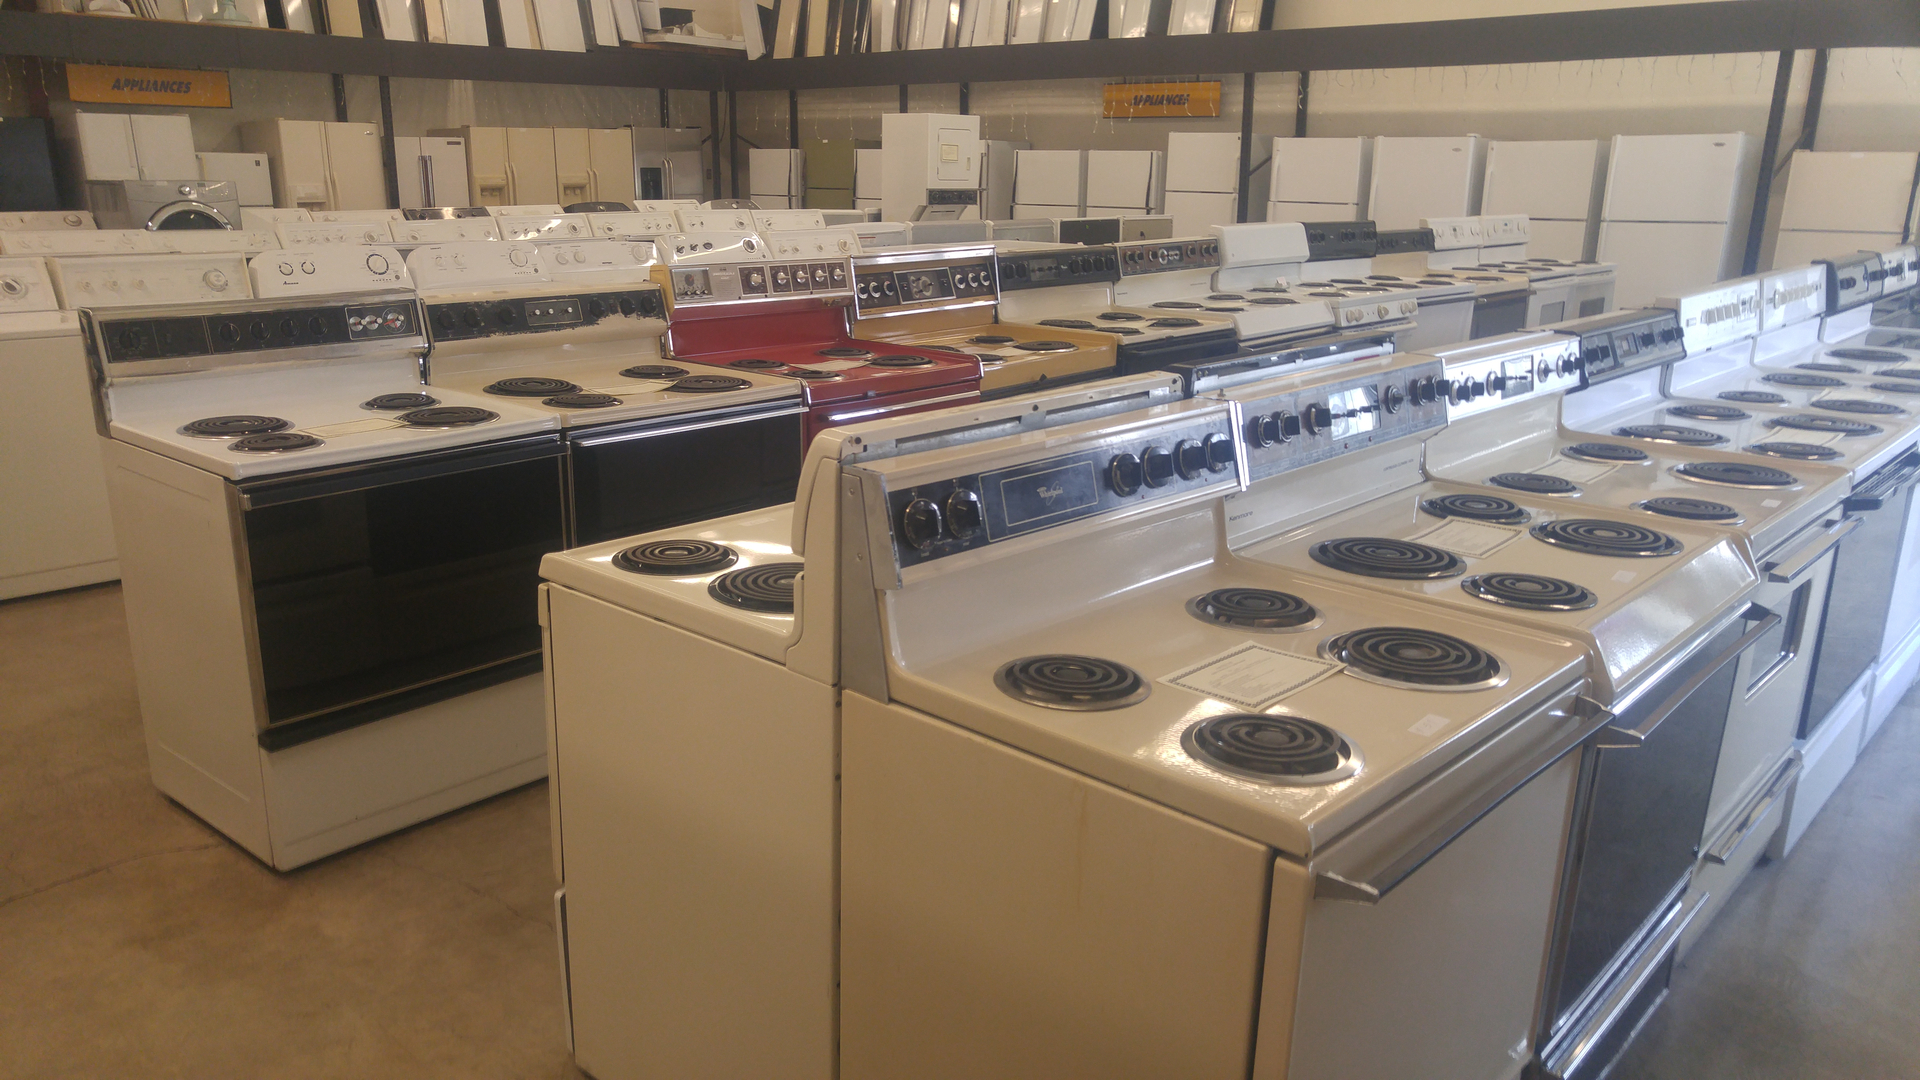 Uncategorized Reconditioned Kitchen Appliances appliance warehouse used appliances high quality come check out our reconditioned rebuilt appliances